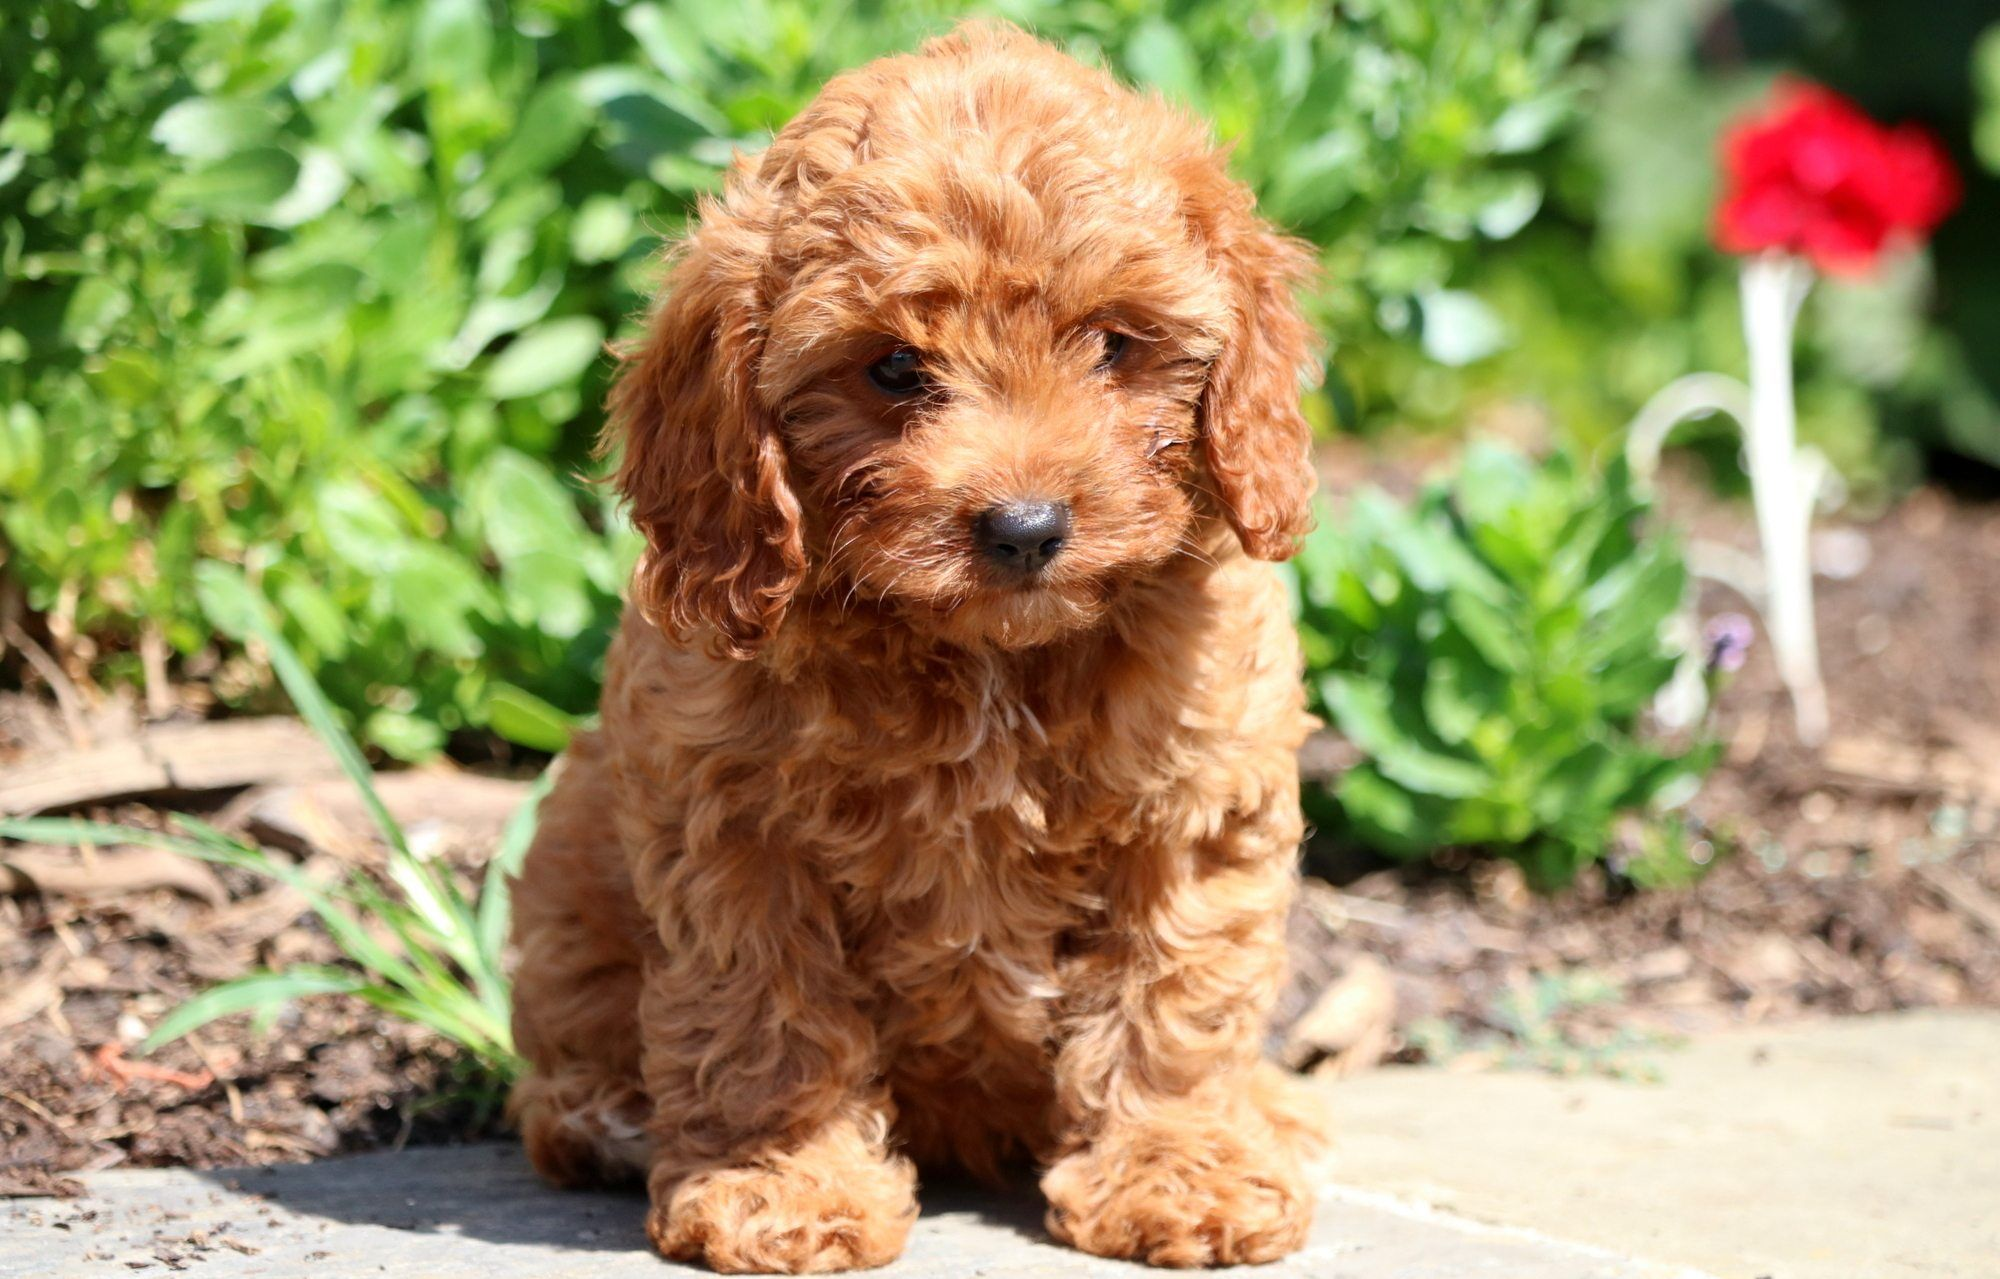 Cavapoo Puppies For Sale Cavapoo Puppies Cavapoo Puppies For